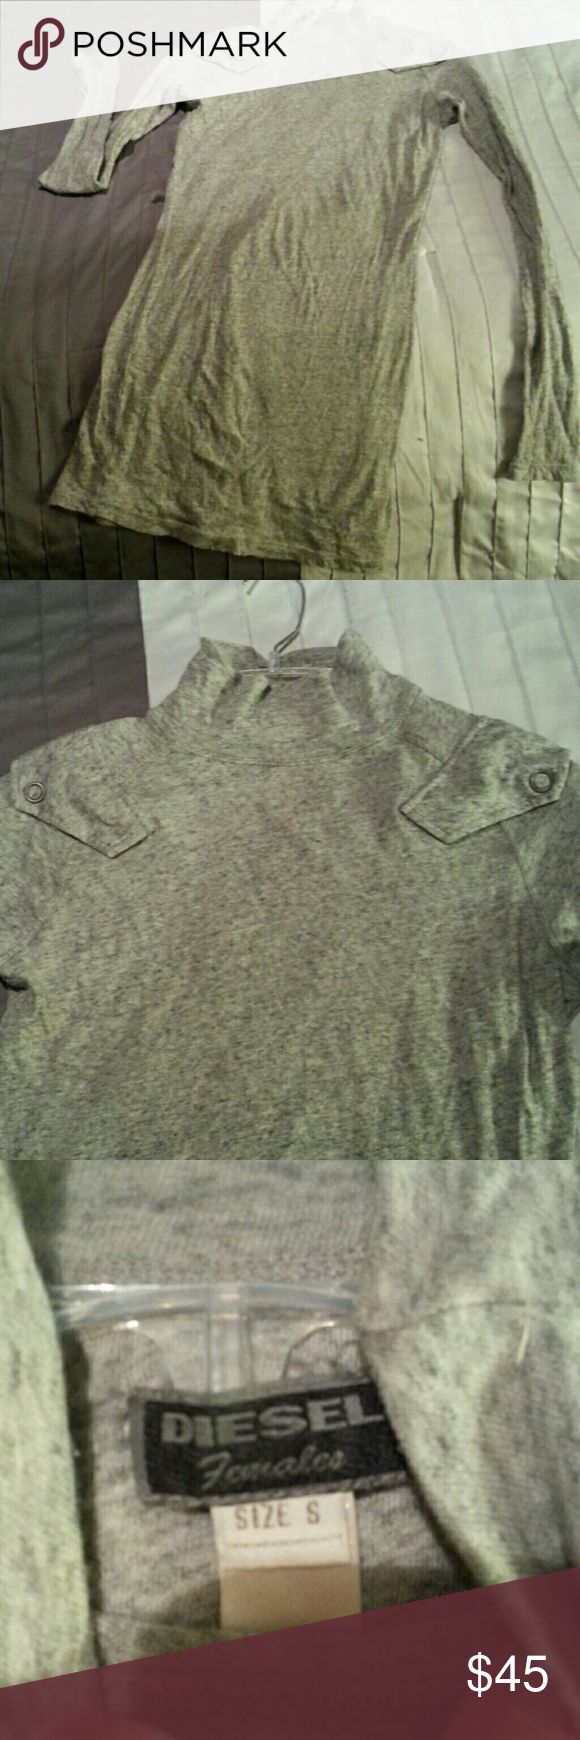 Diesel tunic/mini dress Excellent condition. Long enough to wear as mini dress also.  Thin knit material. Diesel Tops Tunics